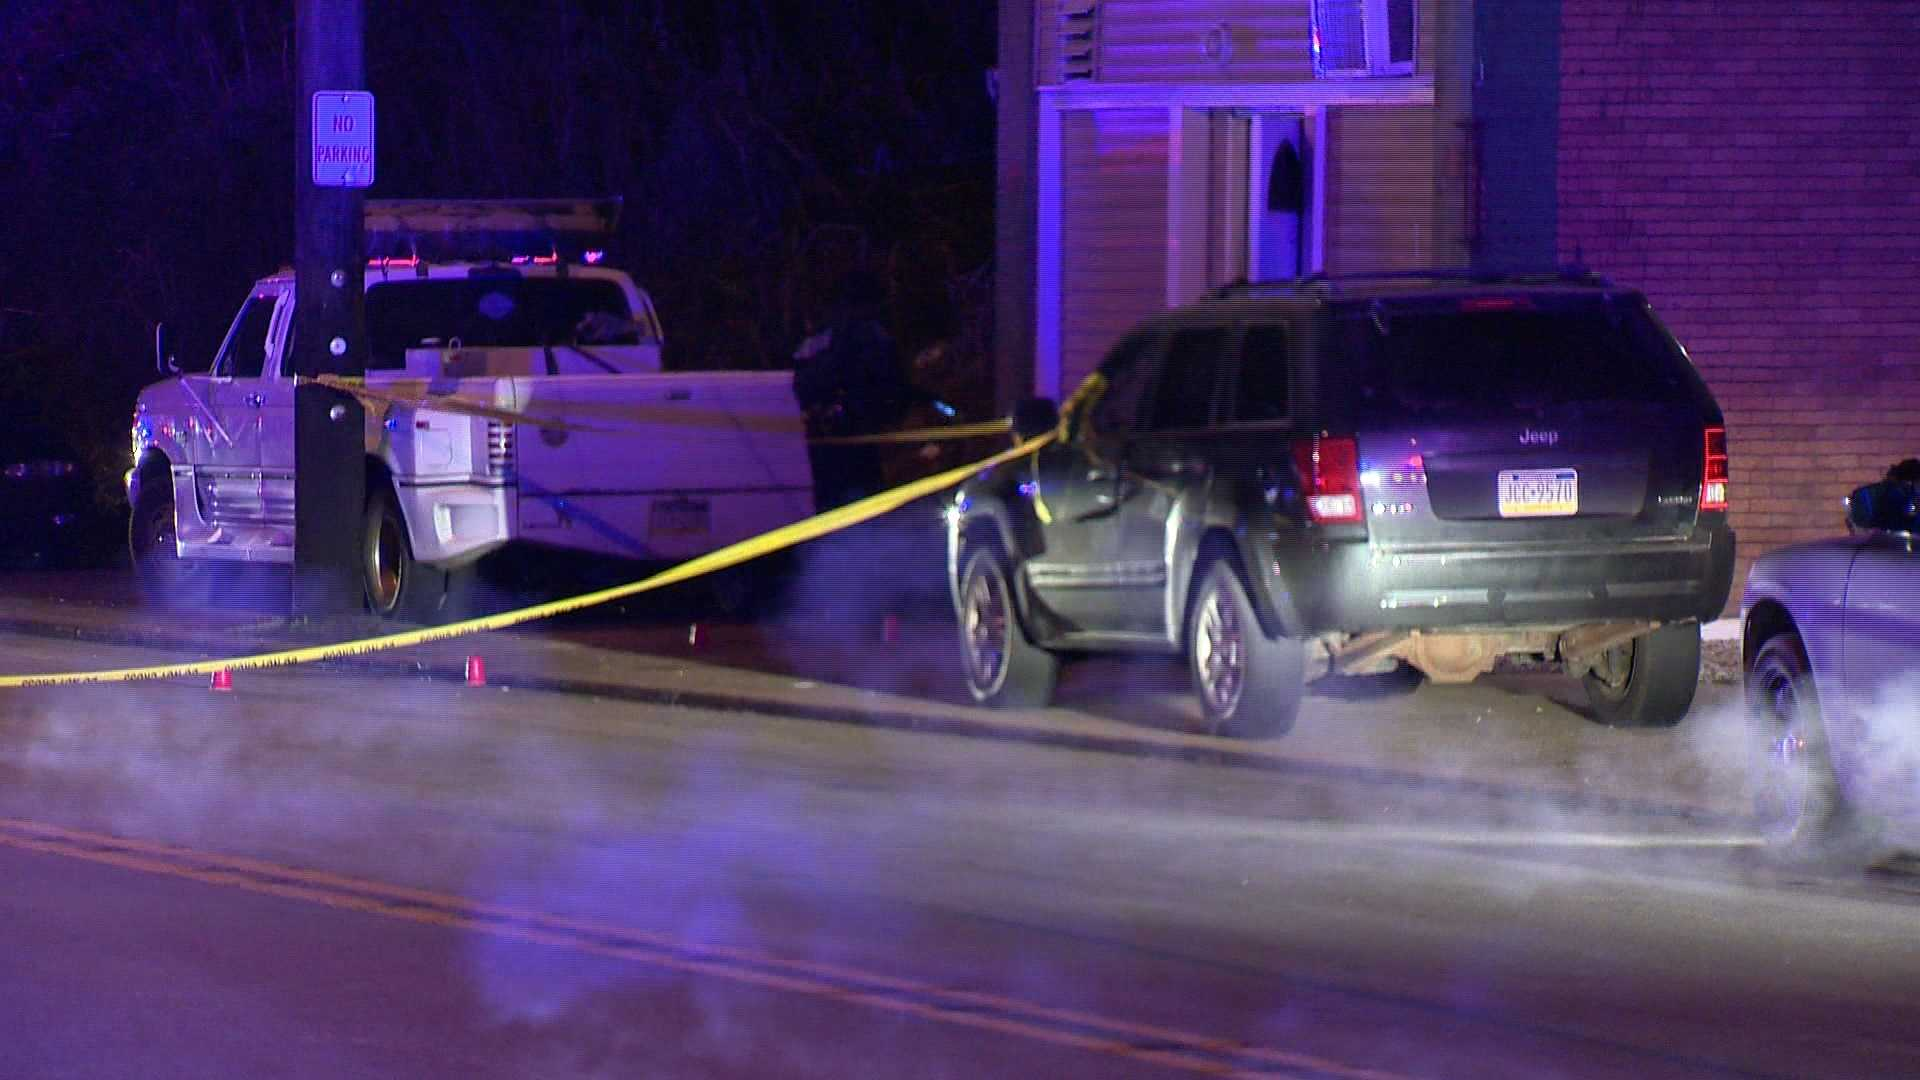 Police are investigating after one person was injured during a shooting in Pittsburgh's Clairton neighborhood.